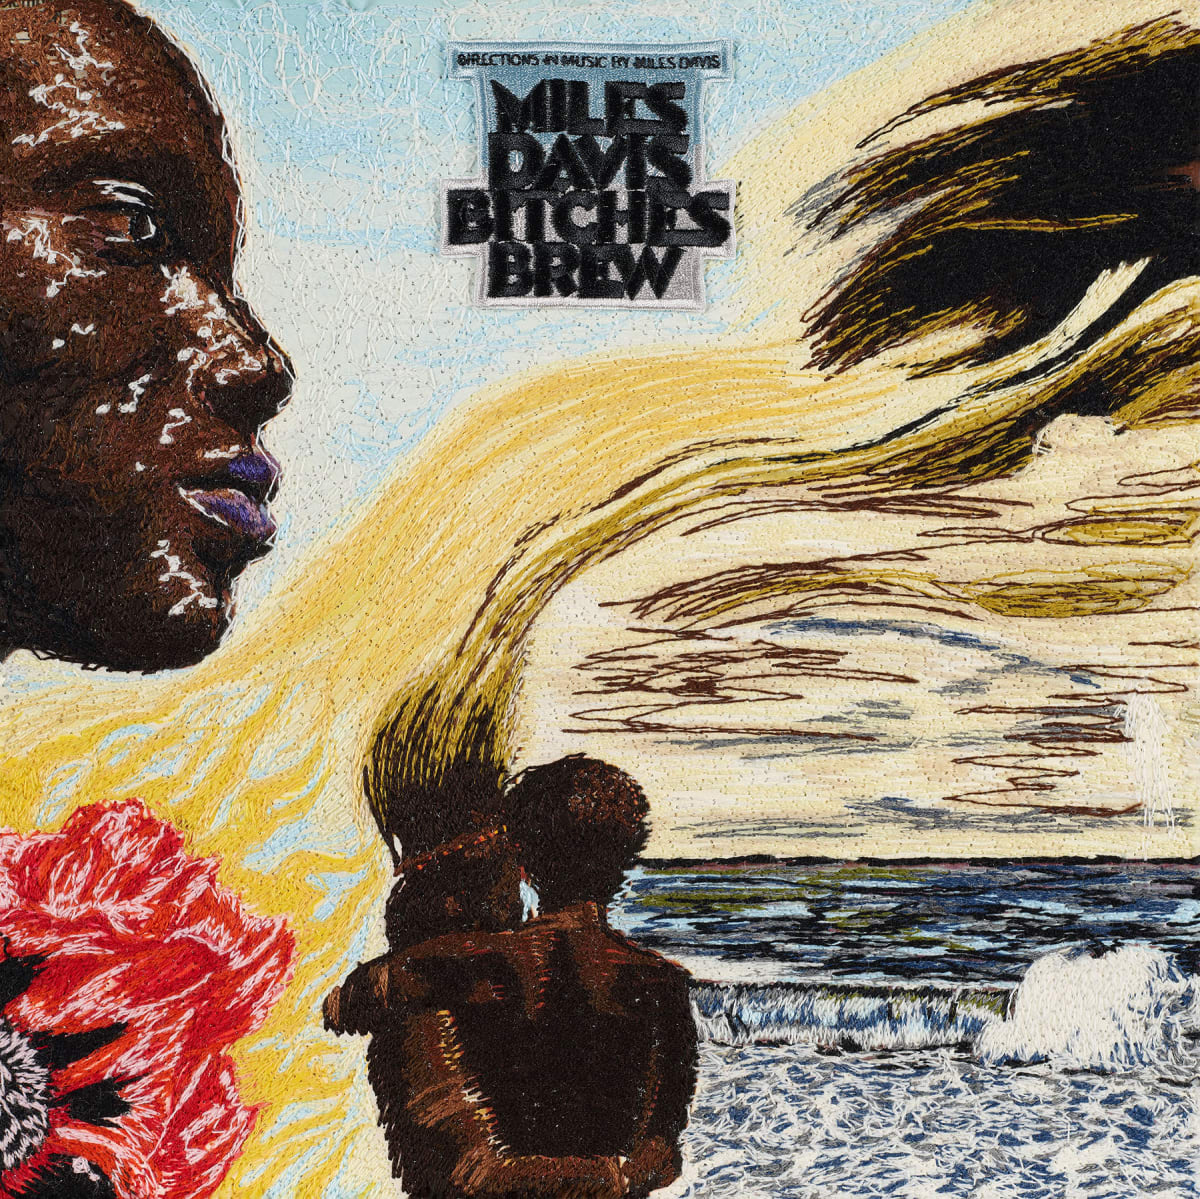 Stephen Wilson, Bitches Brew, Miles Davis , 2019